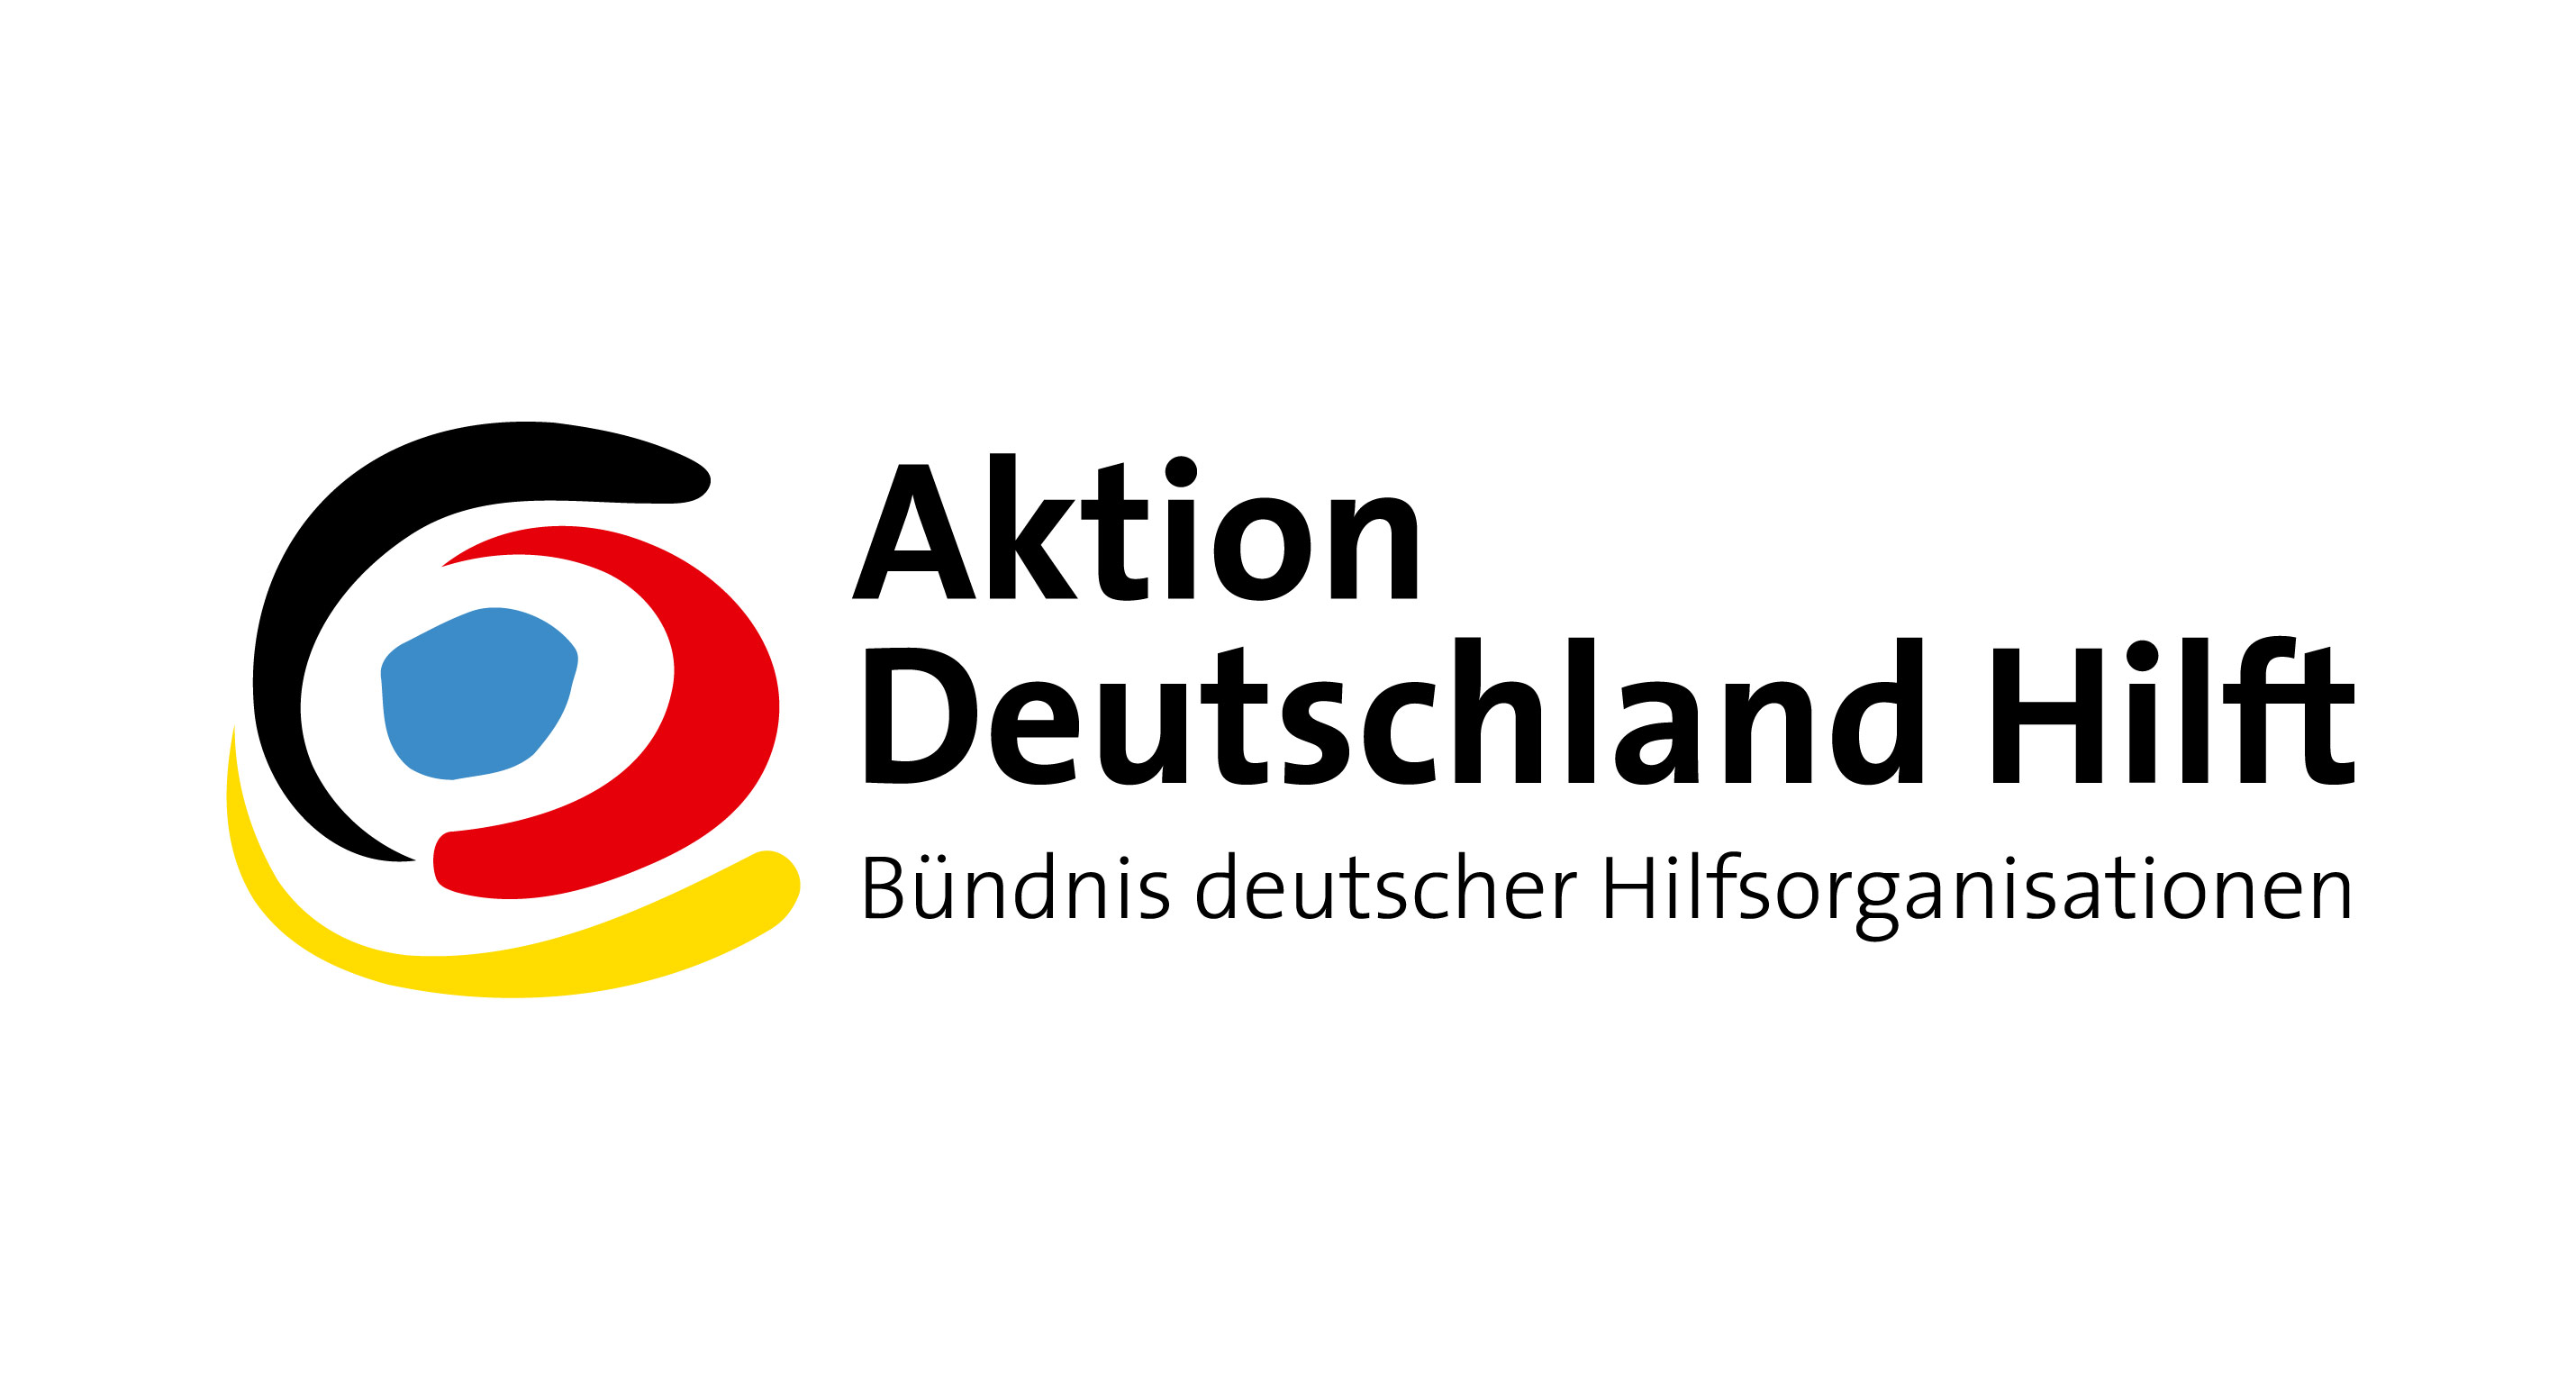 This project is made possible by a grant from Aktion Deutschland Hilft.